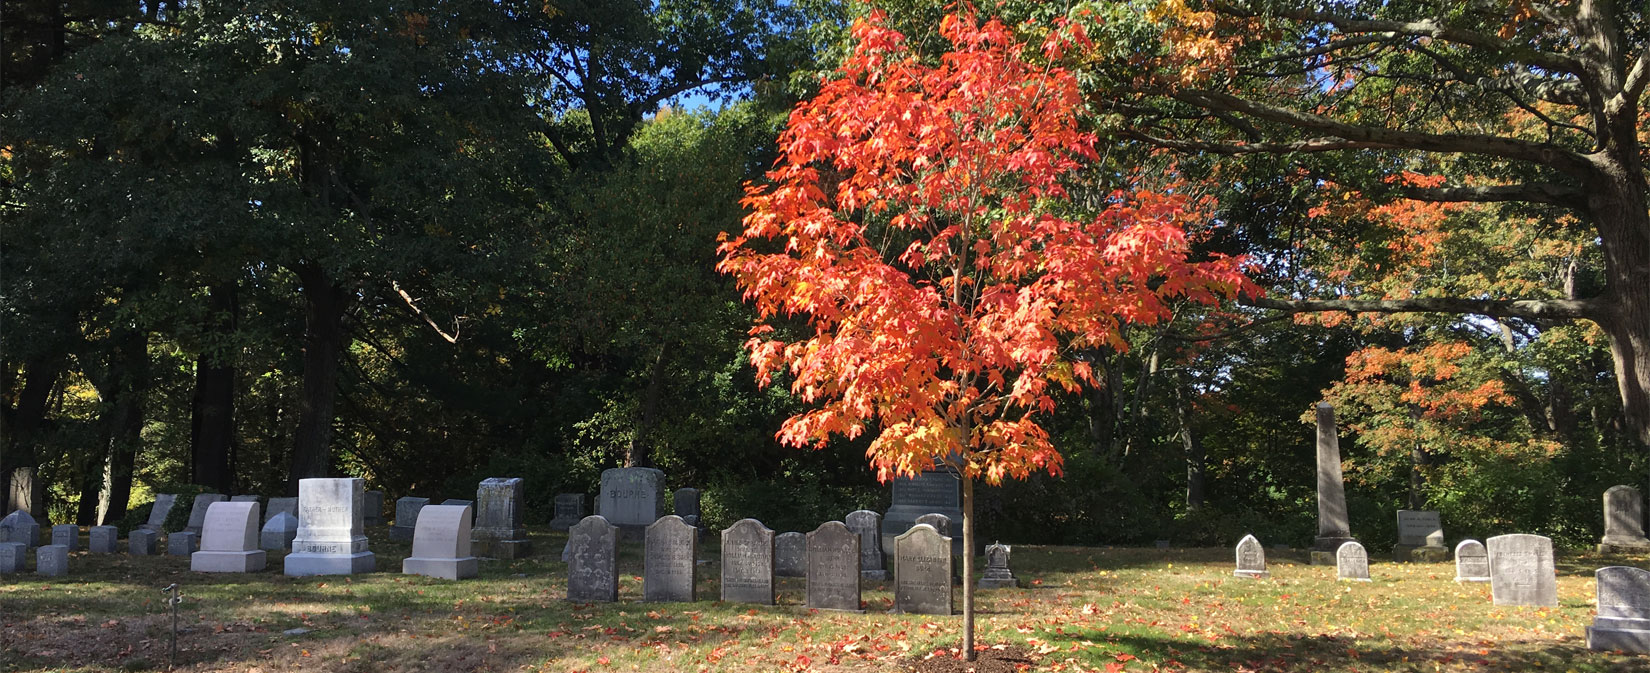 Young-Sugar-Maple-Upper-Grounds-of Newton Cemetery